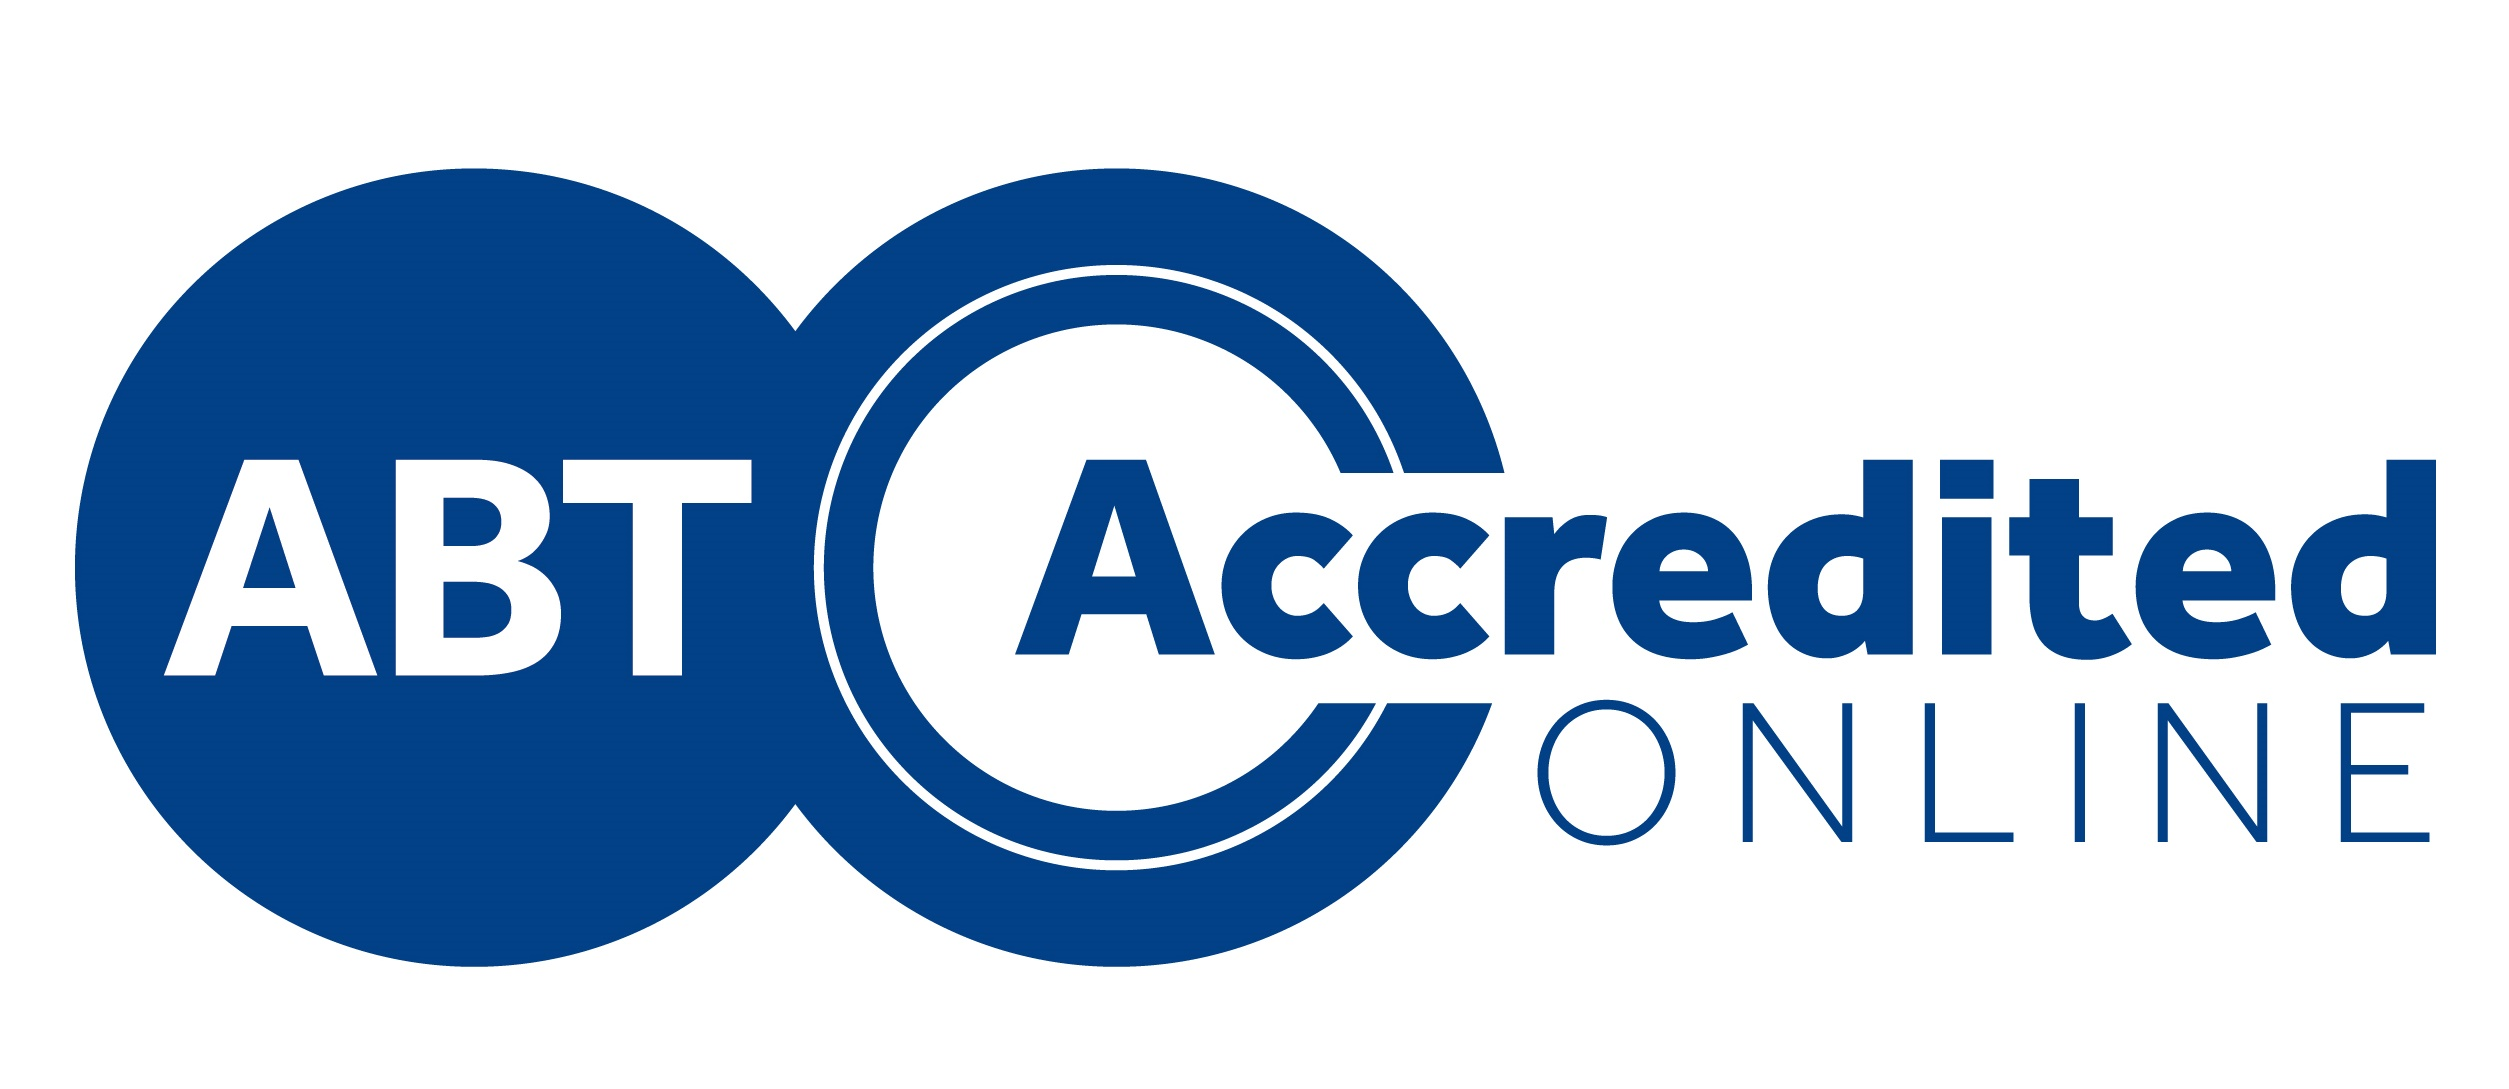 ABT Online Accredited Logo